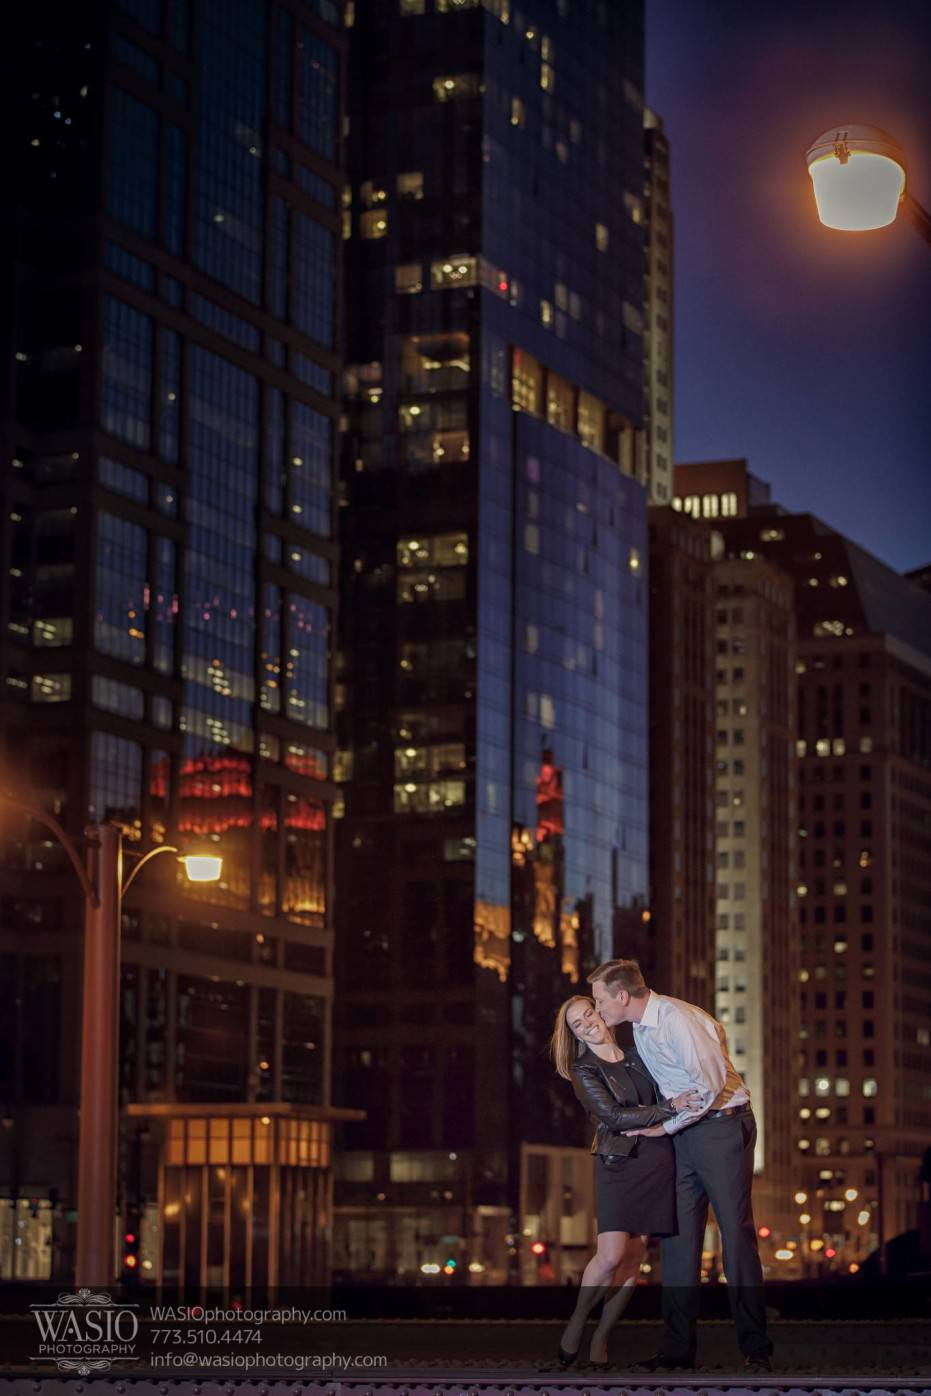 Chicago-engagement-photography-sunset-kiss-on-cheek_98-931x1396 Chicago engagement photography - Jennifer + Steve